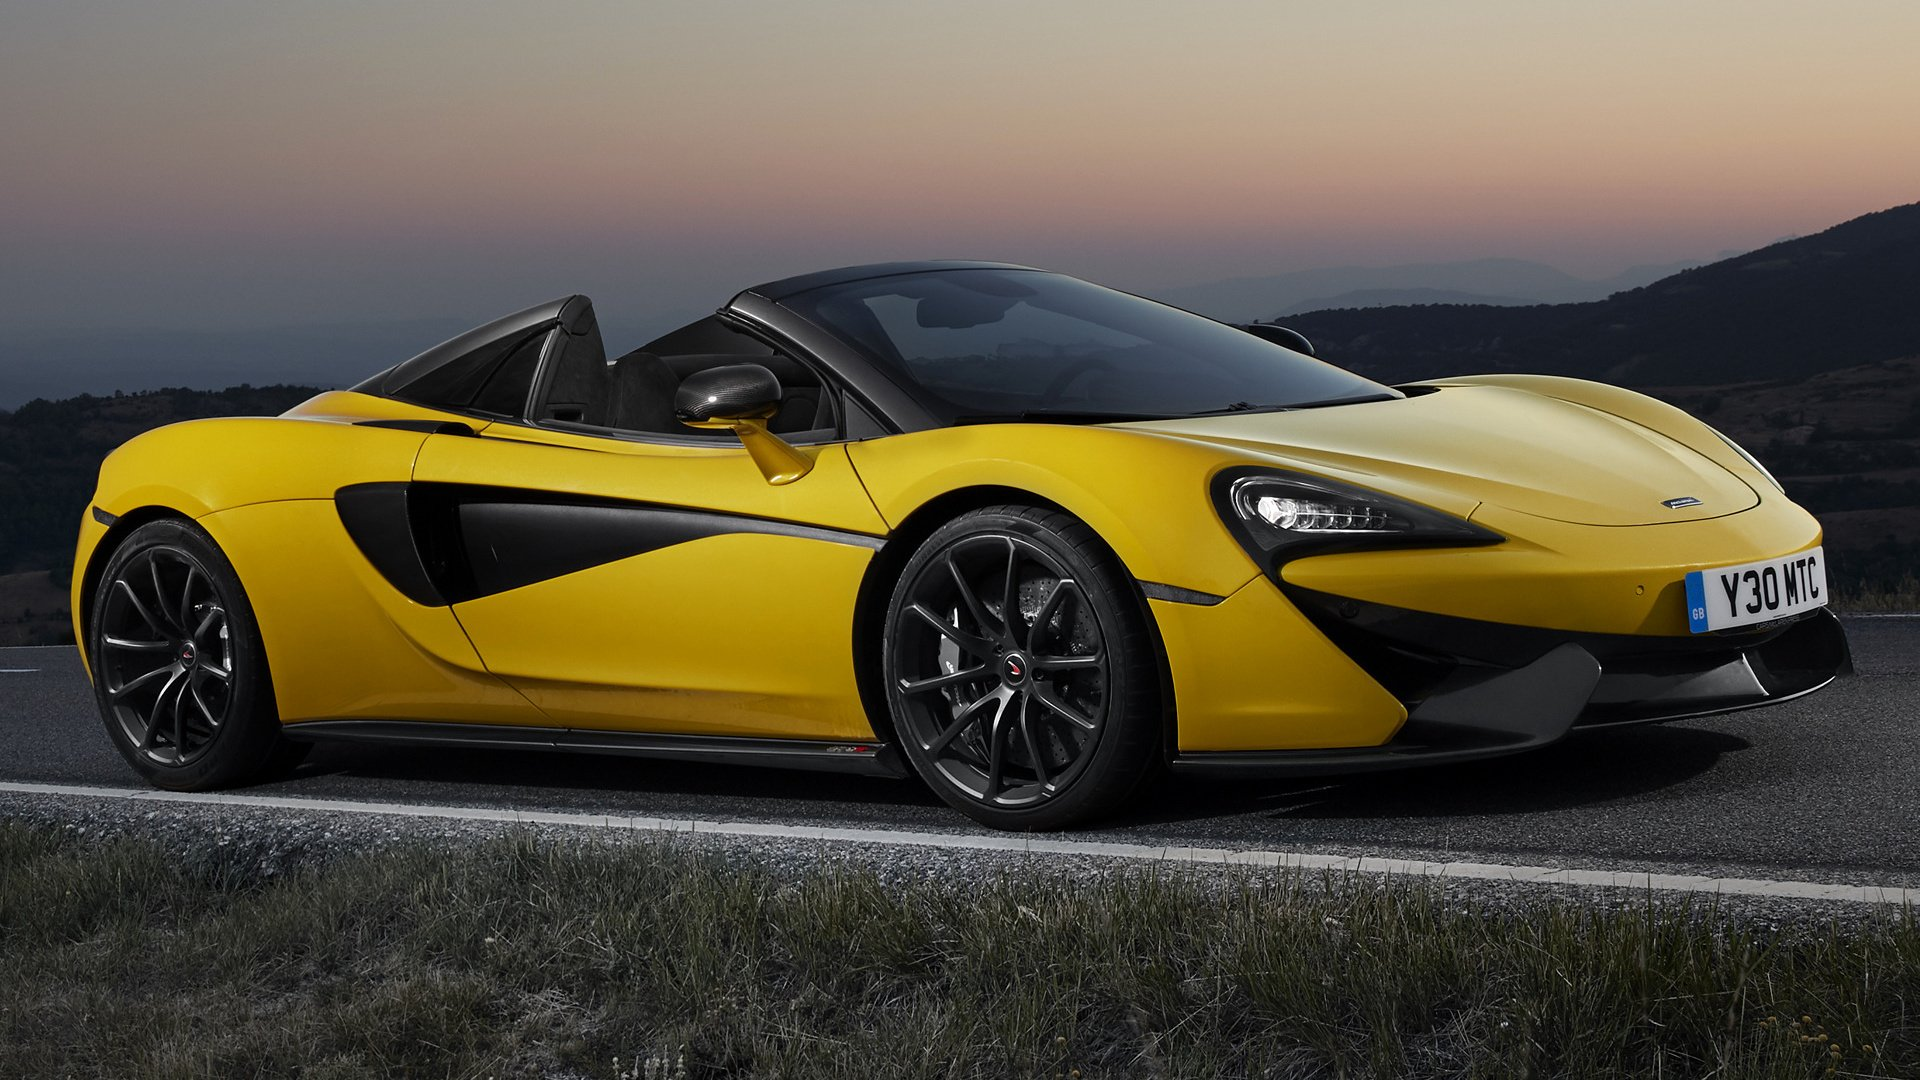 Vehicles - McLaren 570S Spider  Sport Car Supercar Yellow Car Car Wallpaper